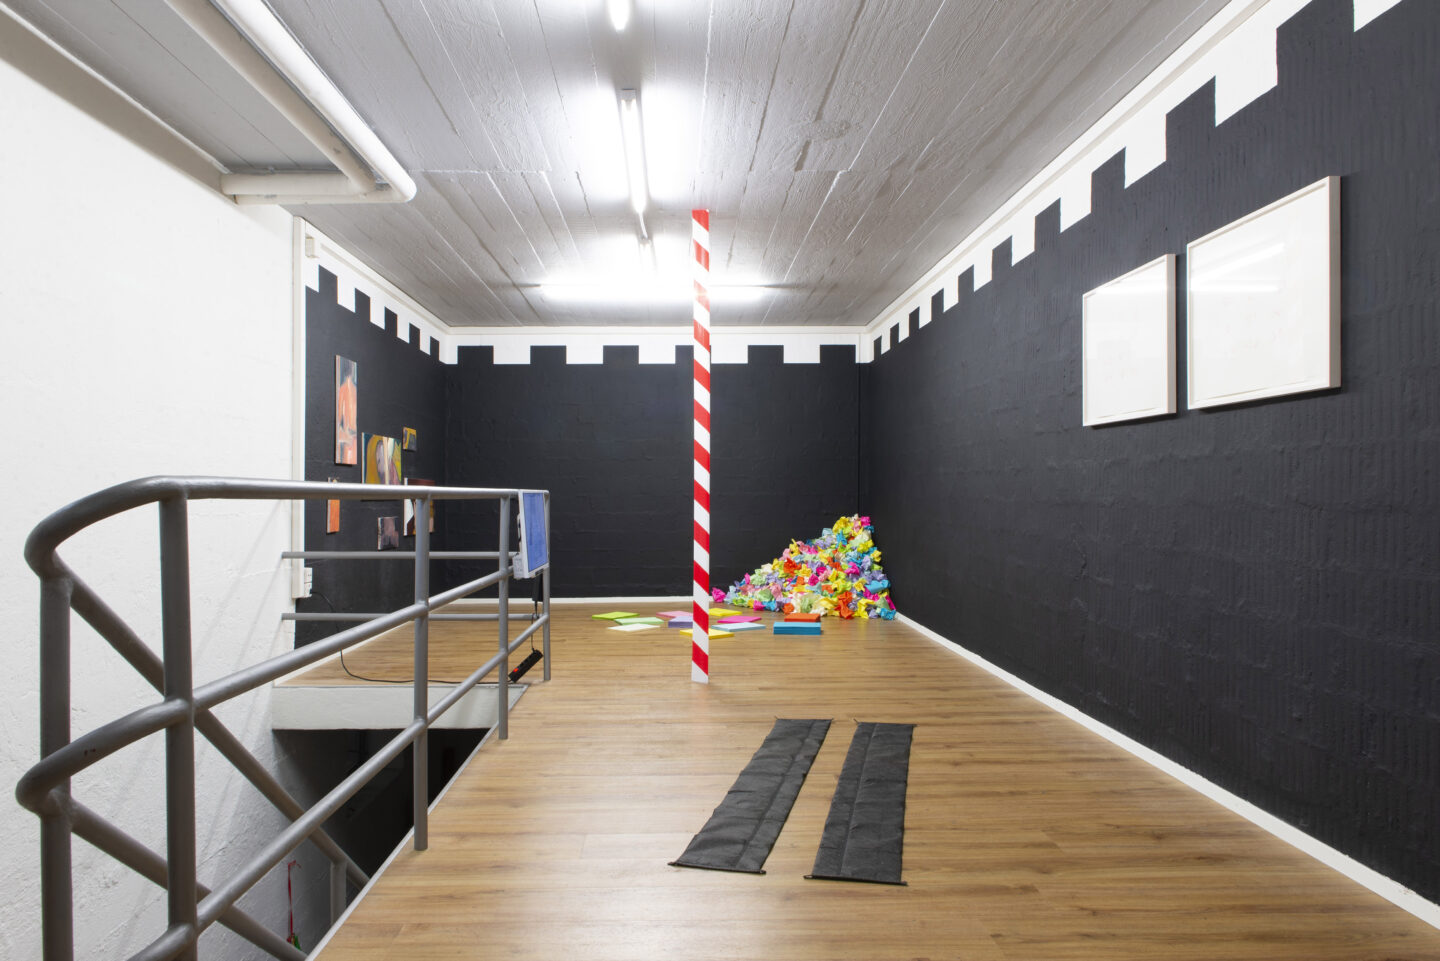 Exhibition View Groupshow «i hate you» at Plymouth Rock, Zurich, 2020 / Courtesy: the artists and Plymouth Rock